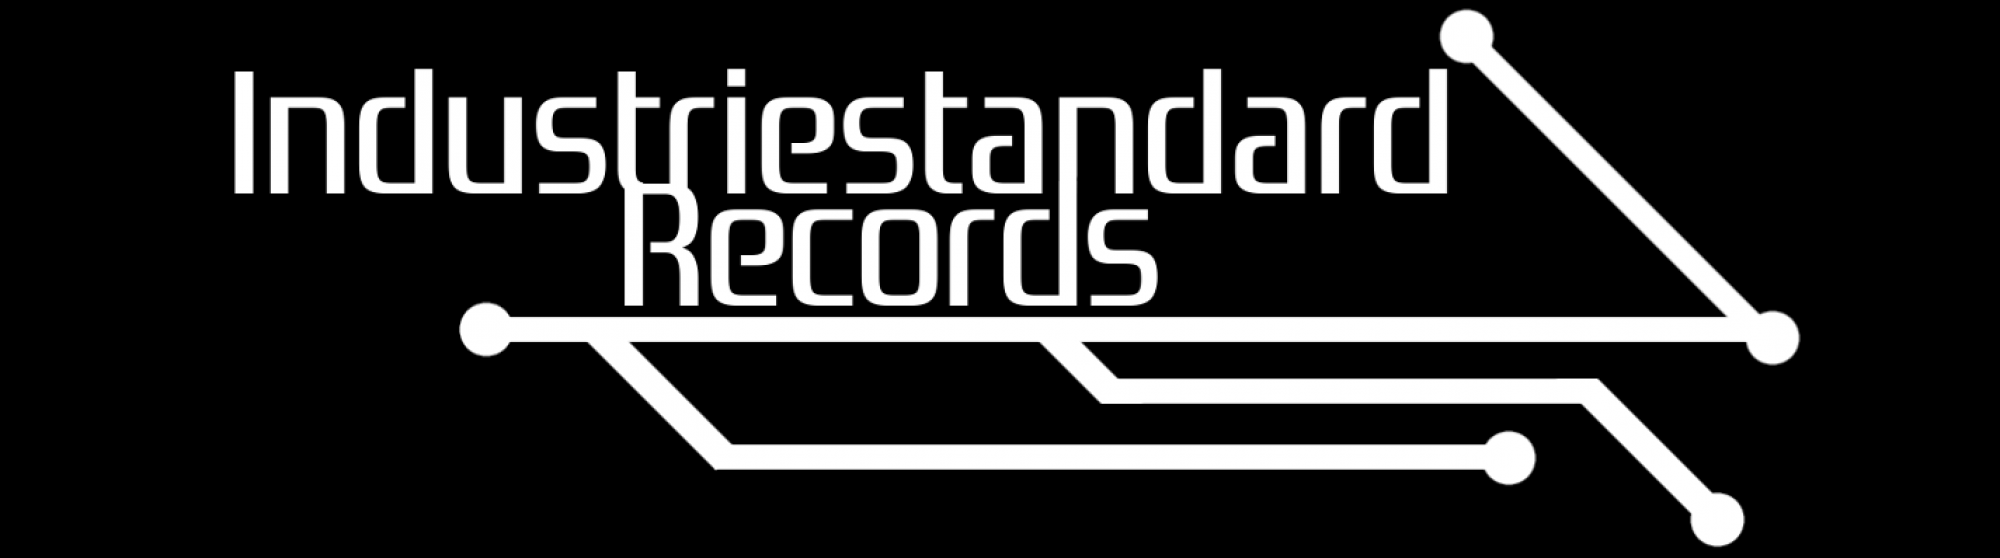 Industriestandard Records